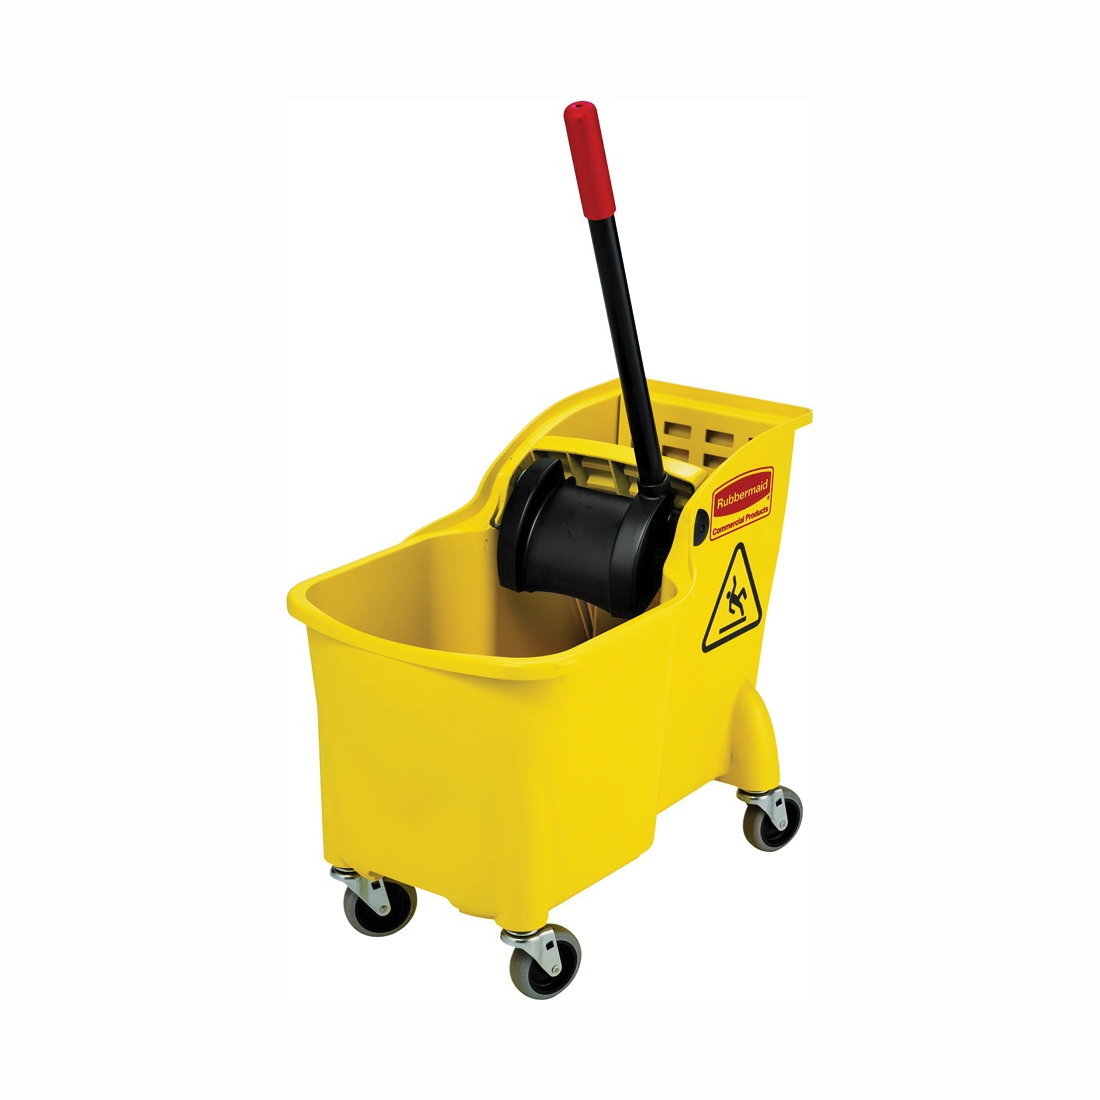 Picture of Rubbermaid FG738000YEL Bucket and Wringer Combo, 31 qt Capacity, Rectangular, Polypropylene Bucket/Pail